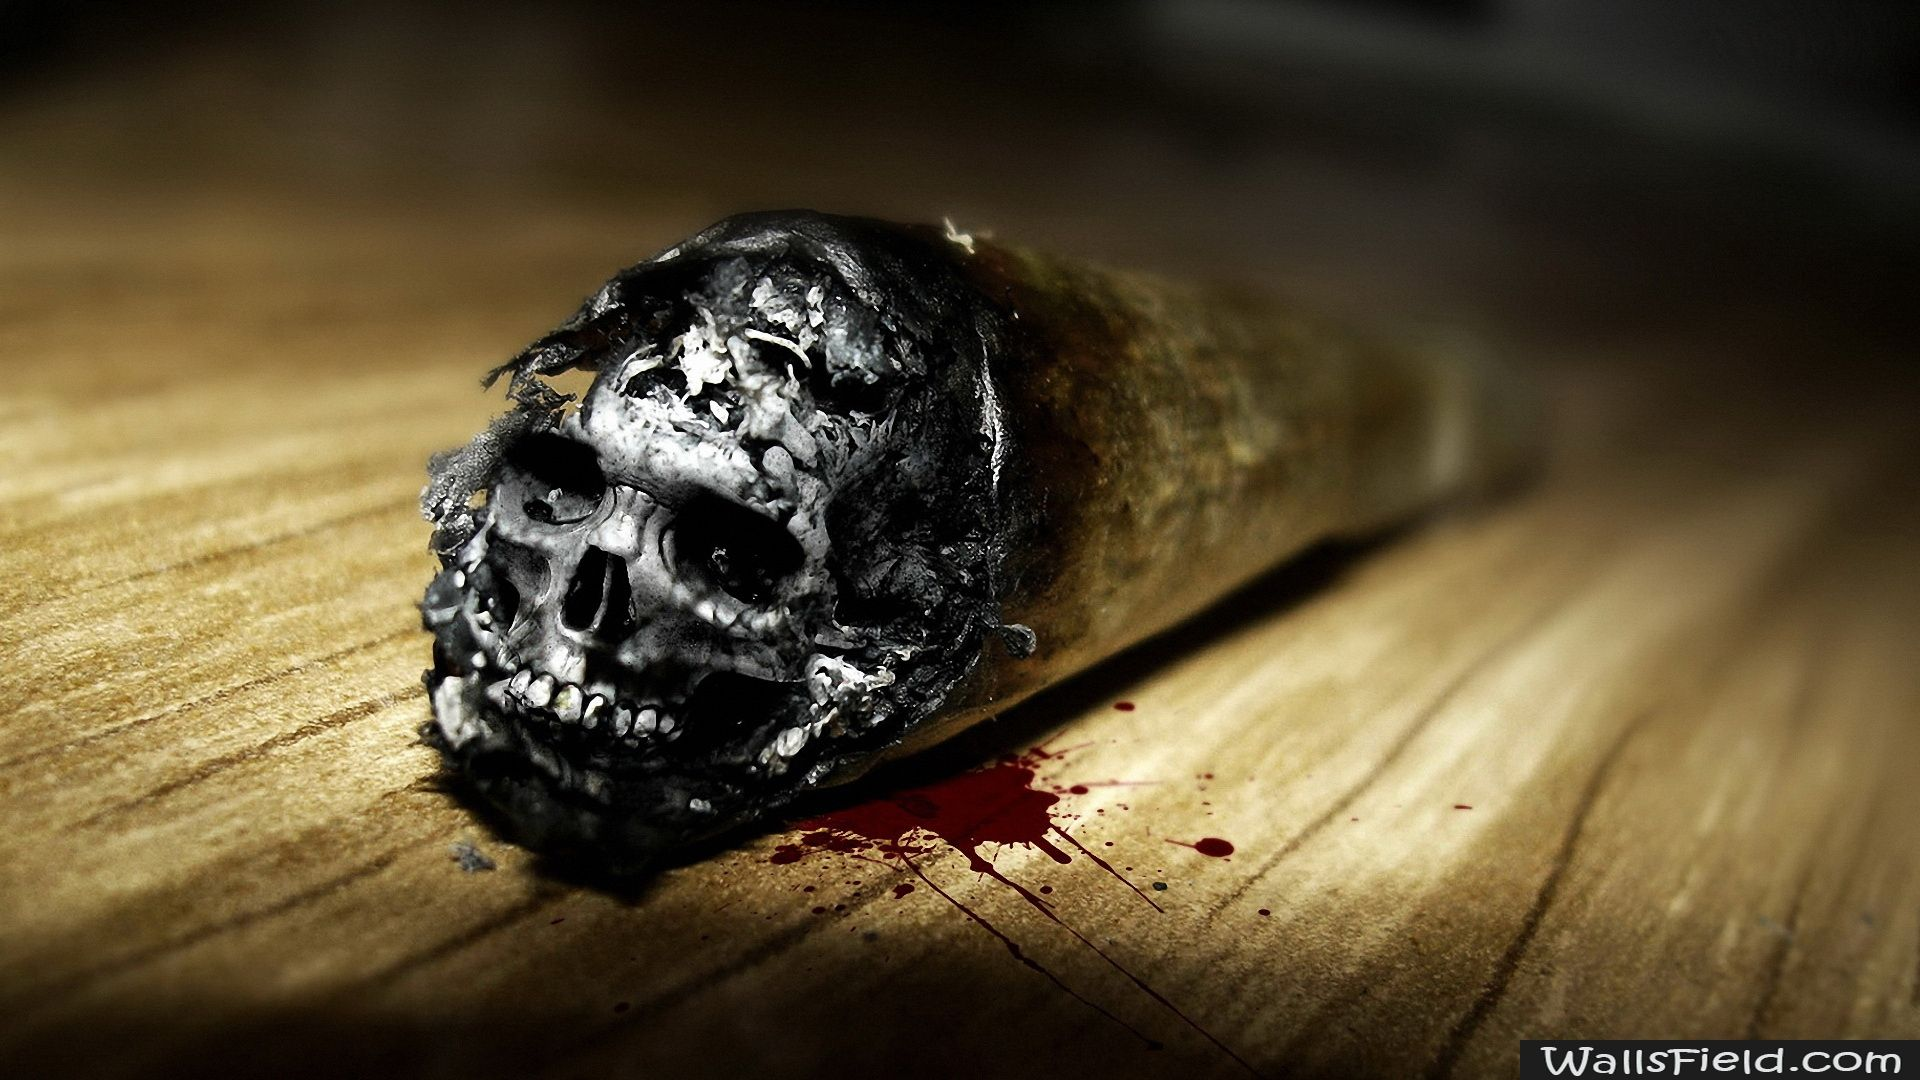 You Can View Download And Comment On Skull The End Cigarette Free Hd Wallpapers For Your Desktop Backgrounds Mobile Tablet In Different Resolutions